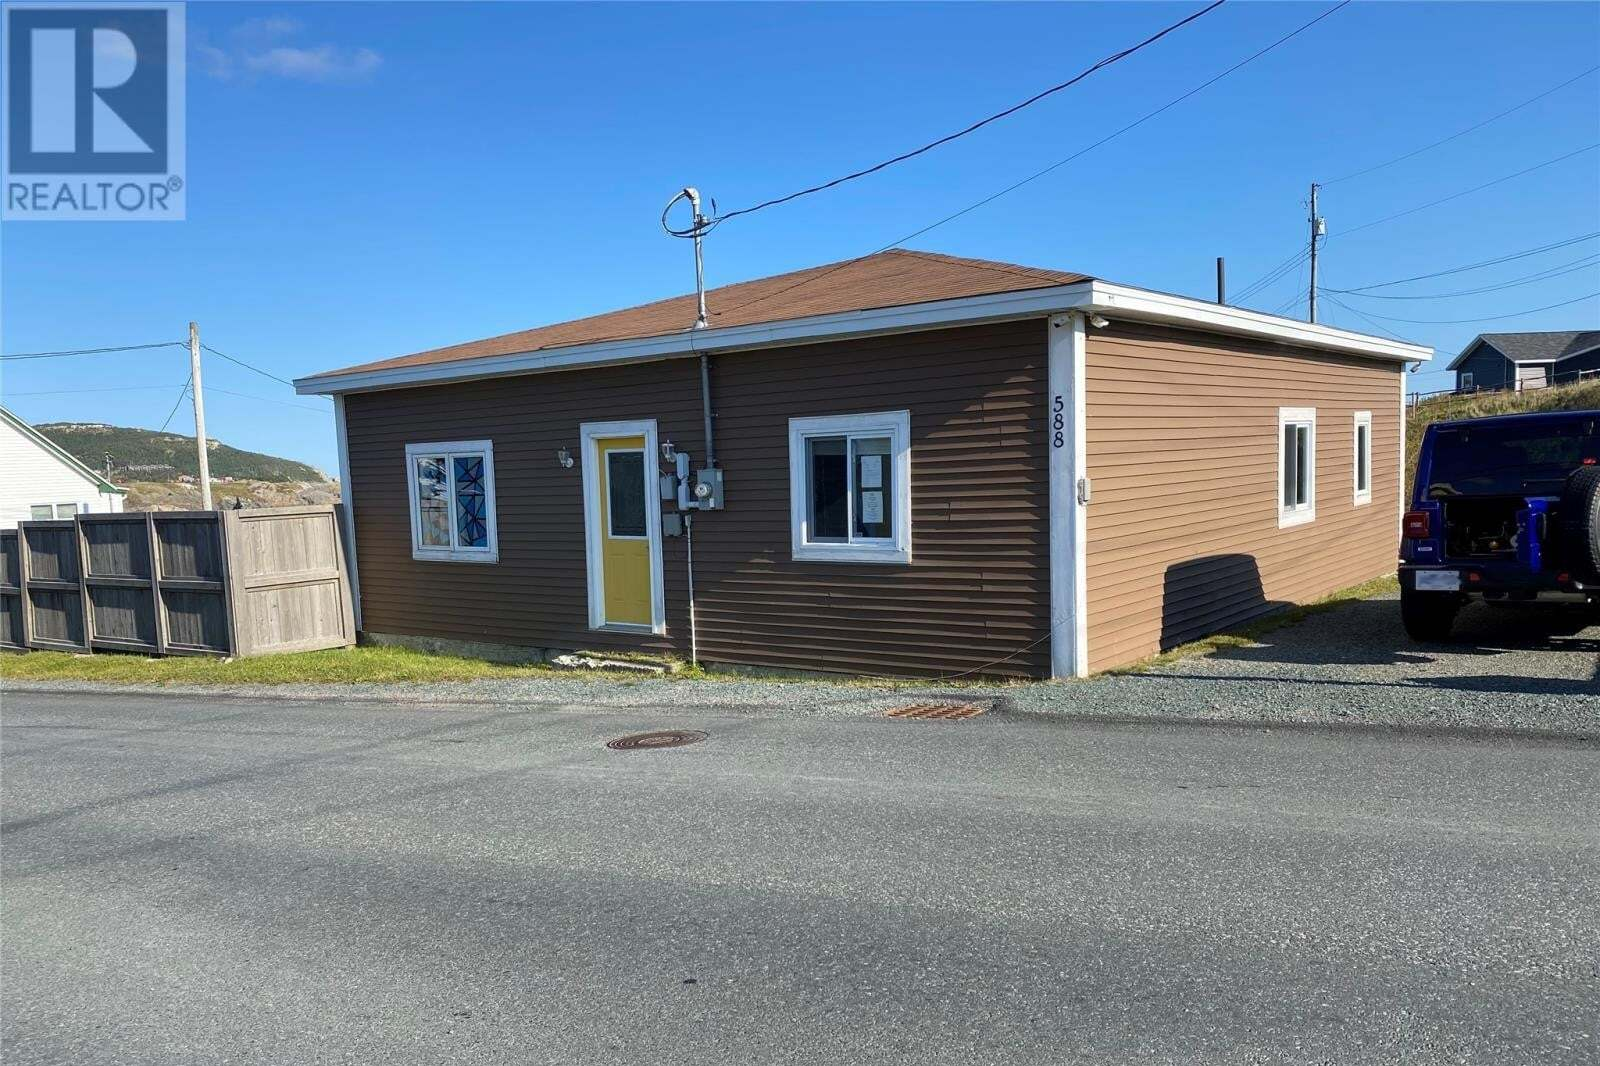 House for sale at 588 Main Rd Pouch Cove Newfoundland - MLS: 1222472